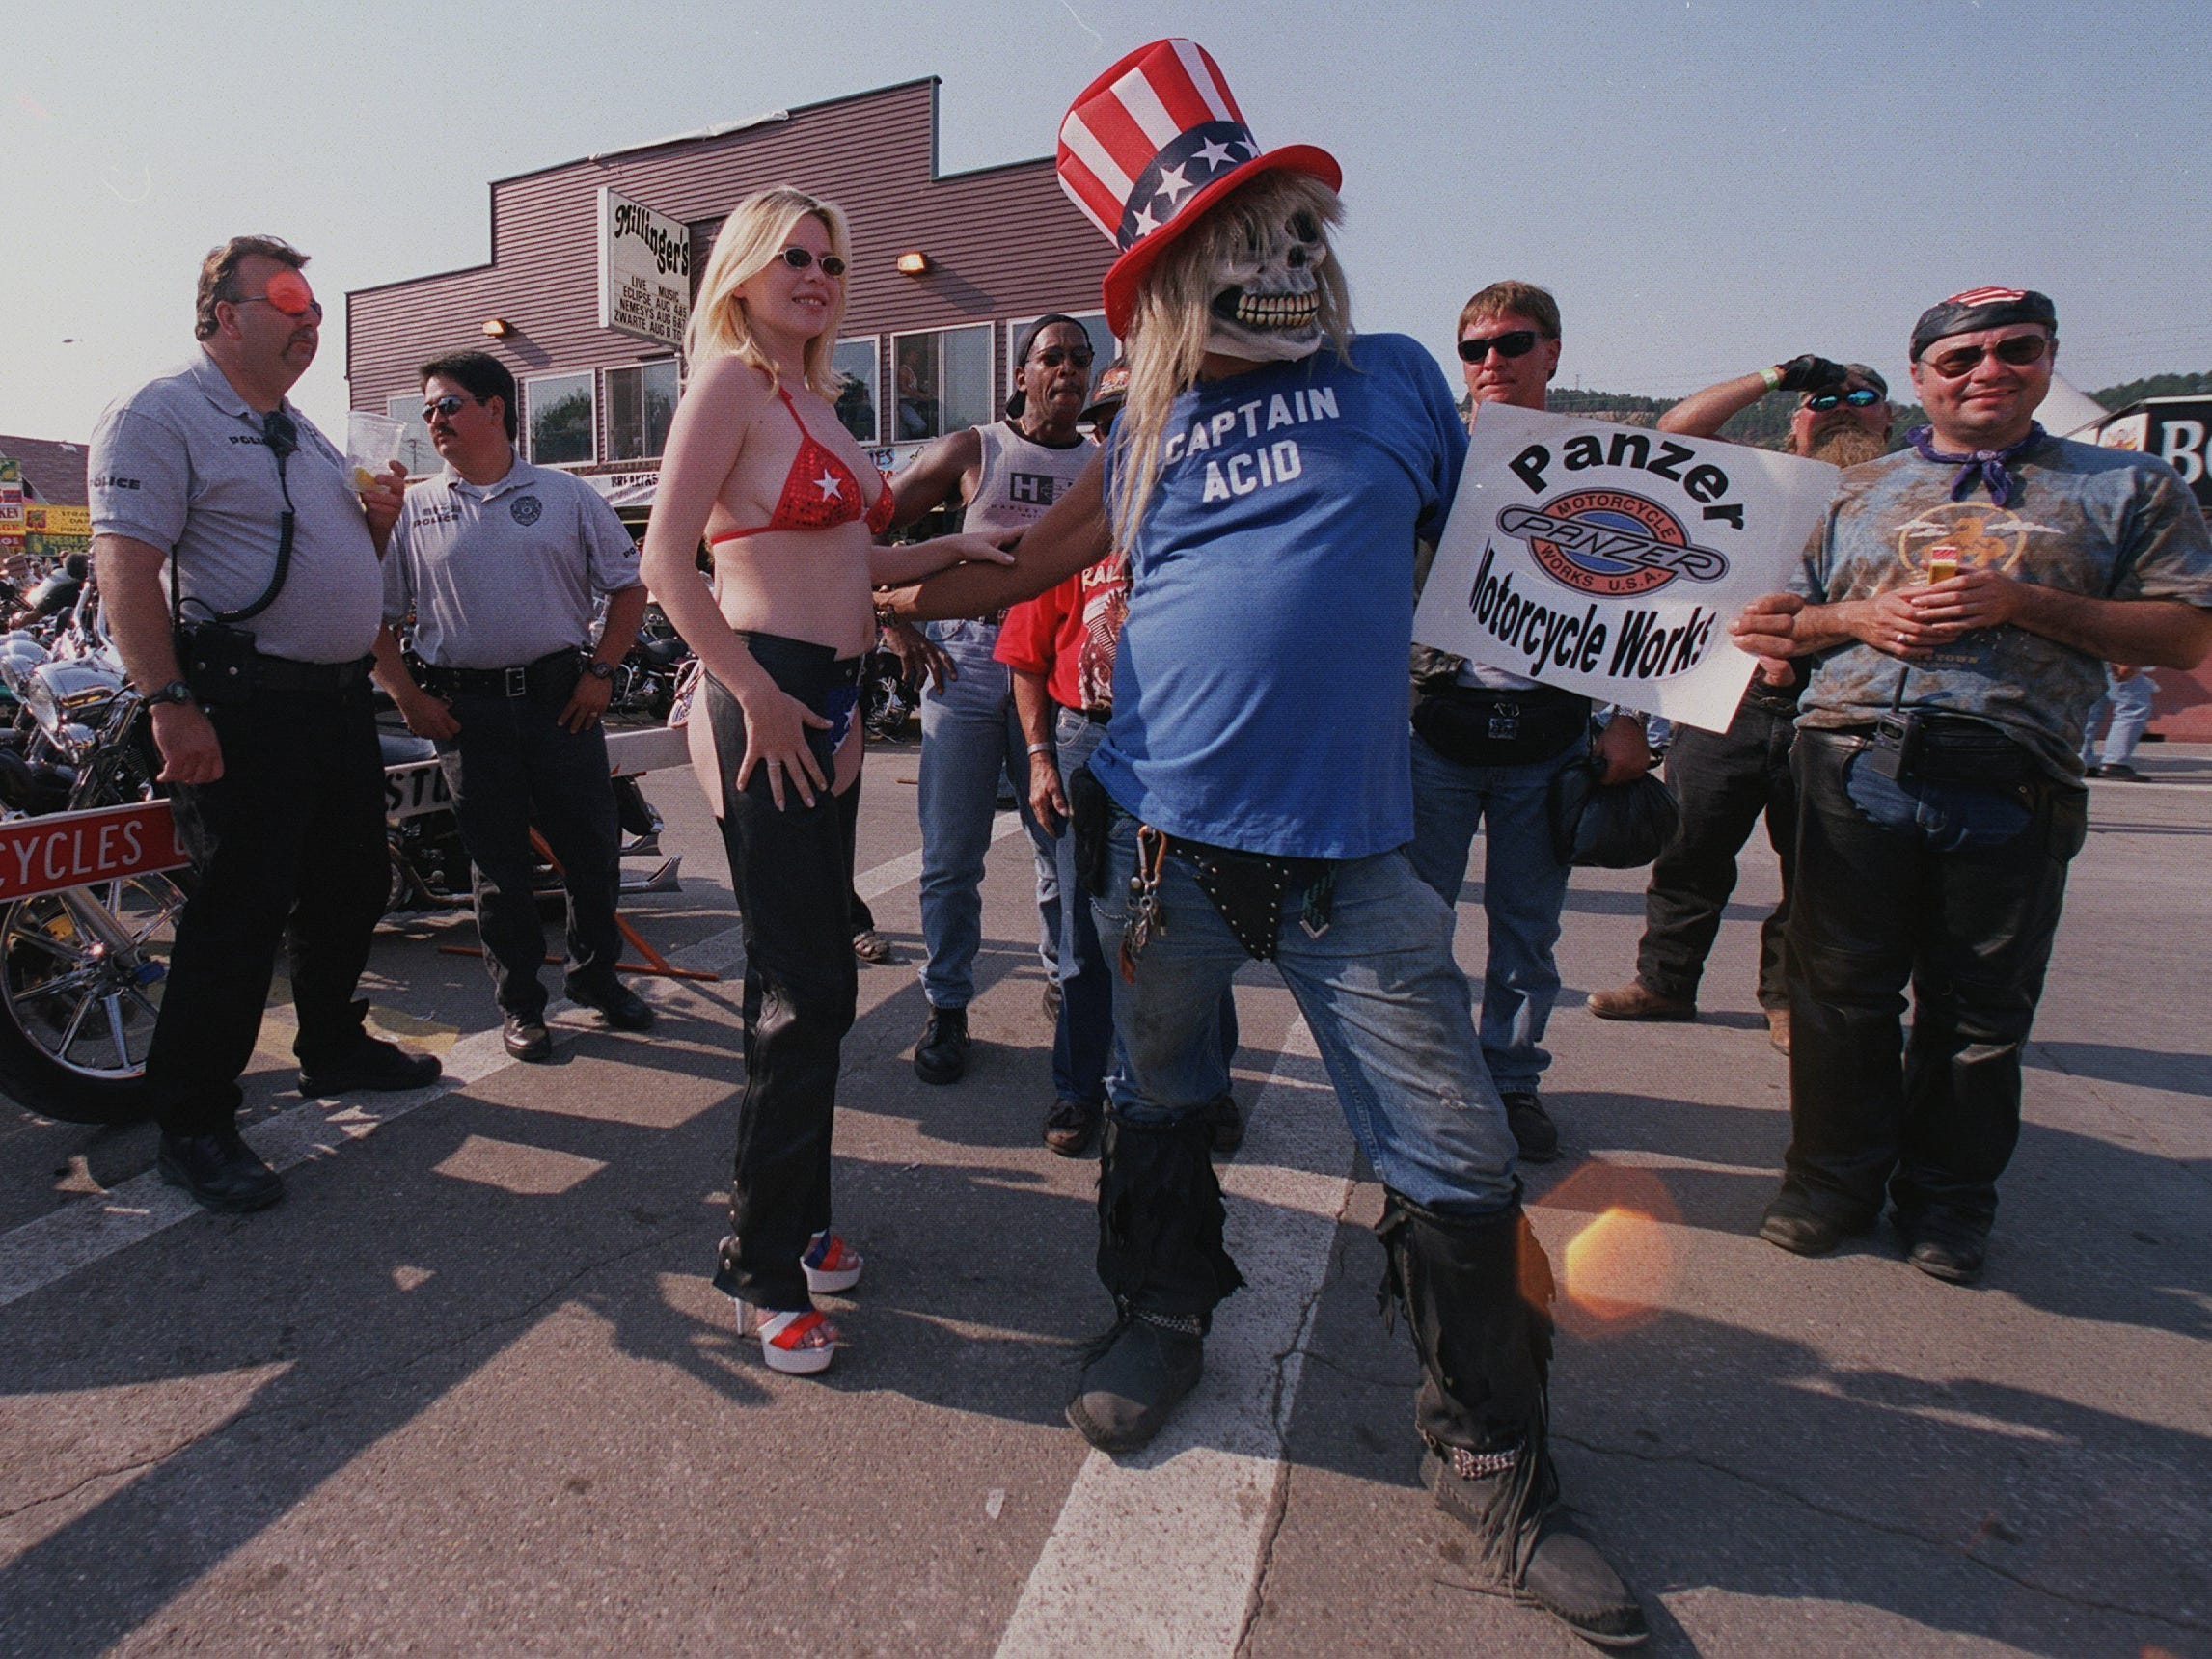 2001: While a pair of police officers keep an eye on downtown activities, a woman clad in leather chaps and a bikini is escorted by a man promoting Panzer Motorcycle Works during bike week in Sturgis, S.D. Panzer is small Colorado-based motorcycle maker. Most manufacturers find it essential to have a presence at the event.